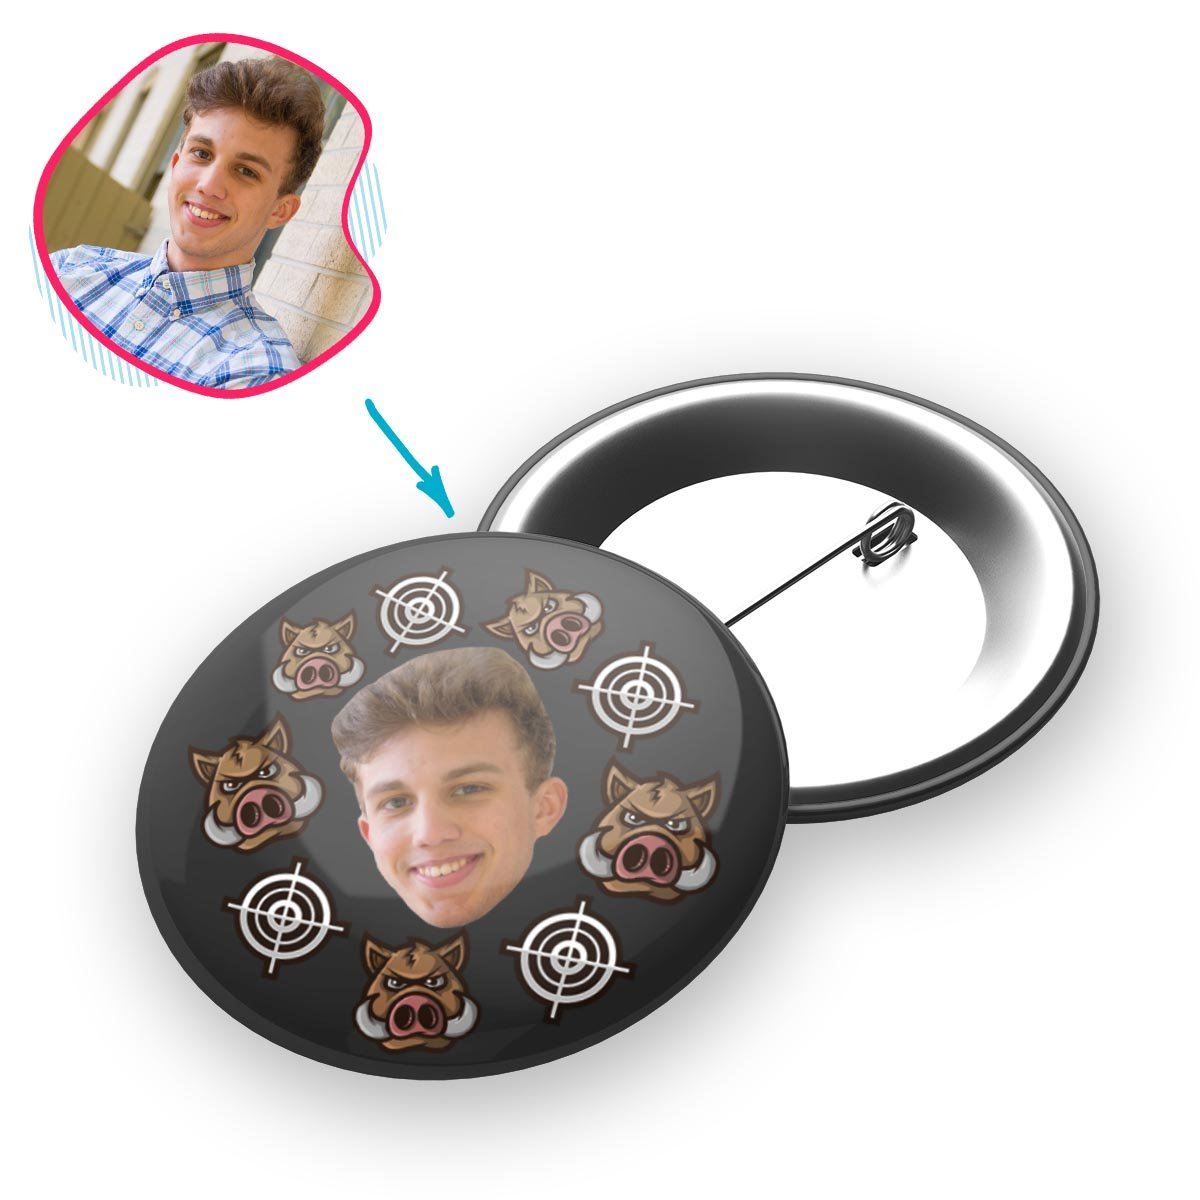 dark Boar Hunter pin personalized with photo of face printed on it